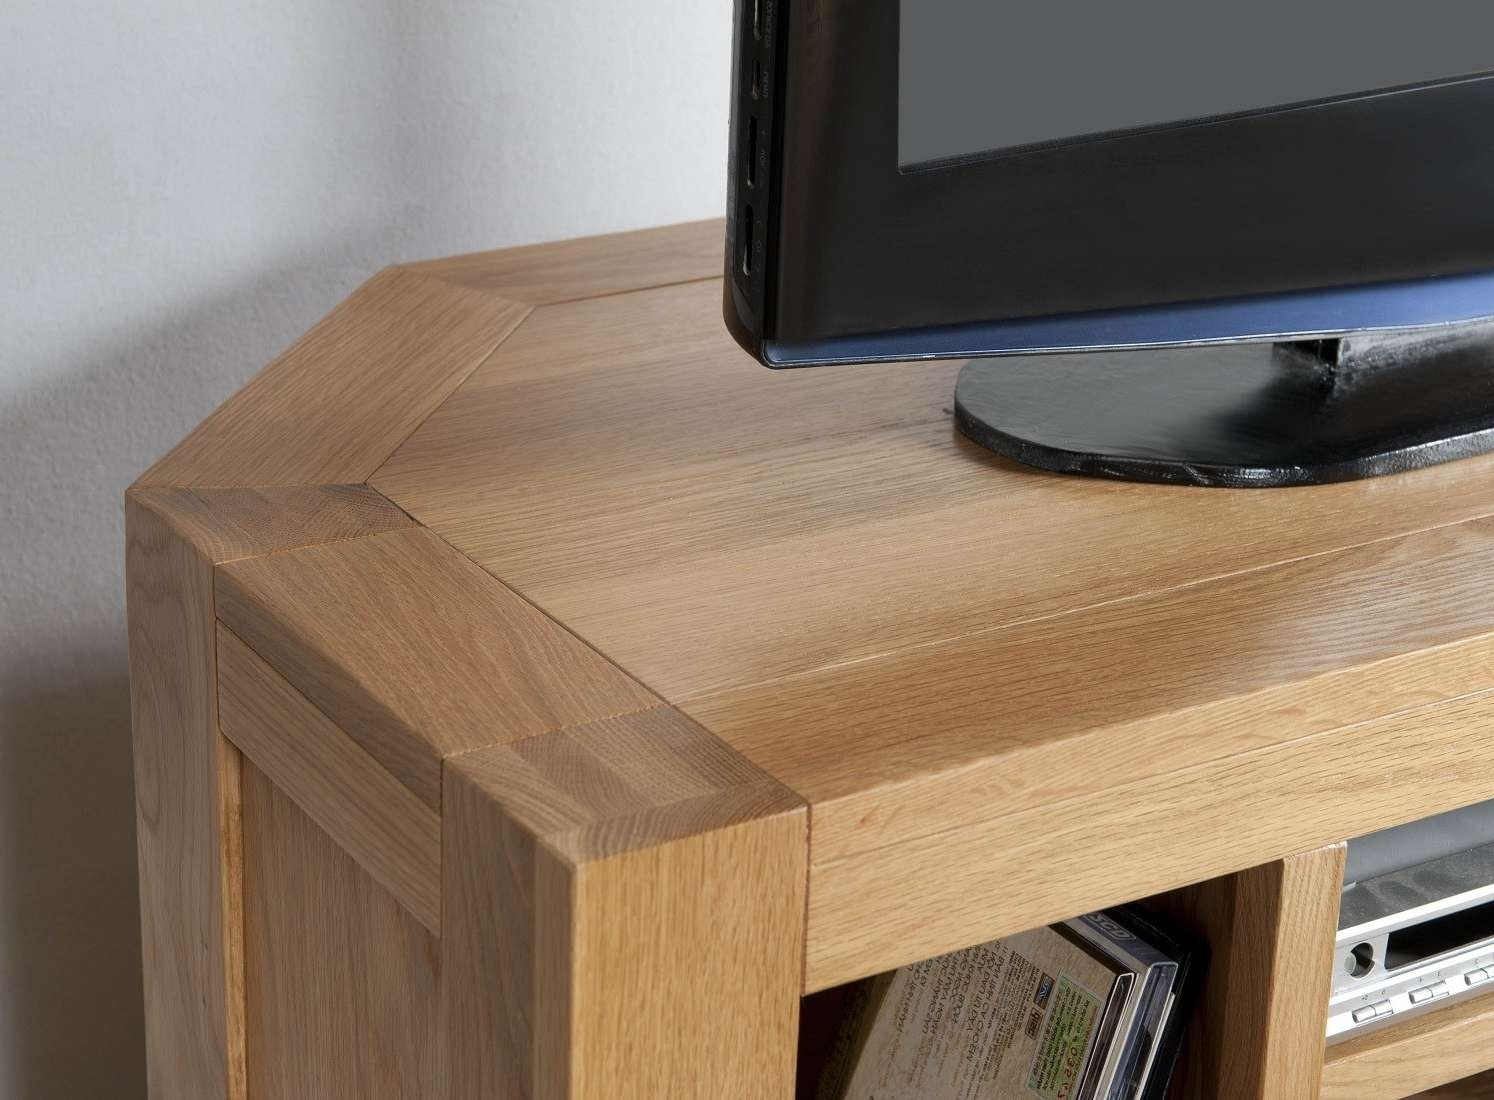 Aylesbury Contemporary Light Oak Corner Tv Unit | Oak Furniture Uk Pertaining To Light Oak Corner Tv Stands (View 12 of 20)